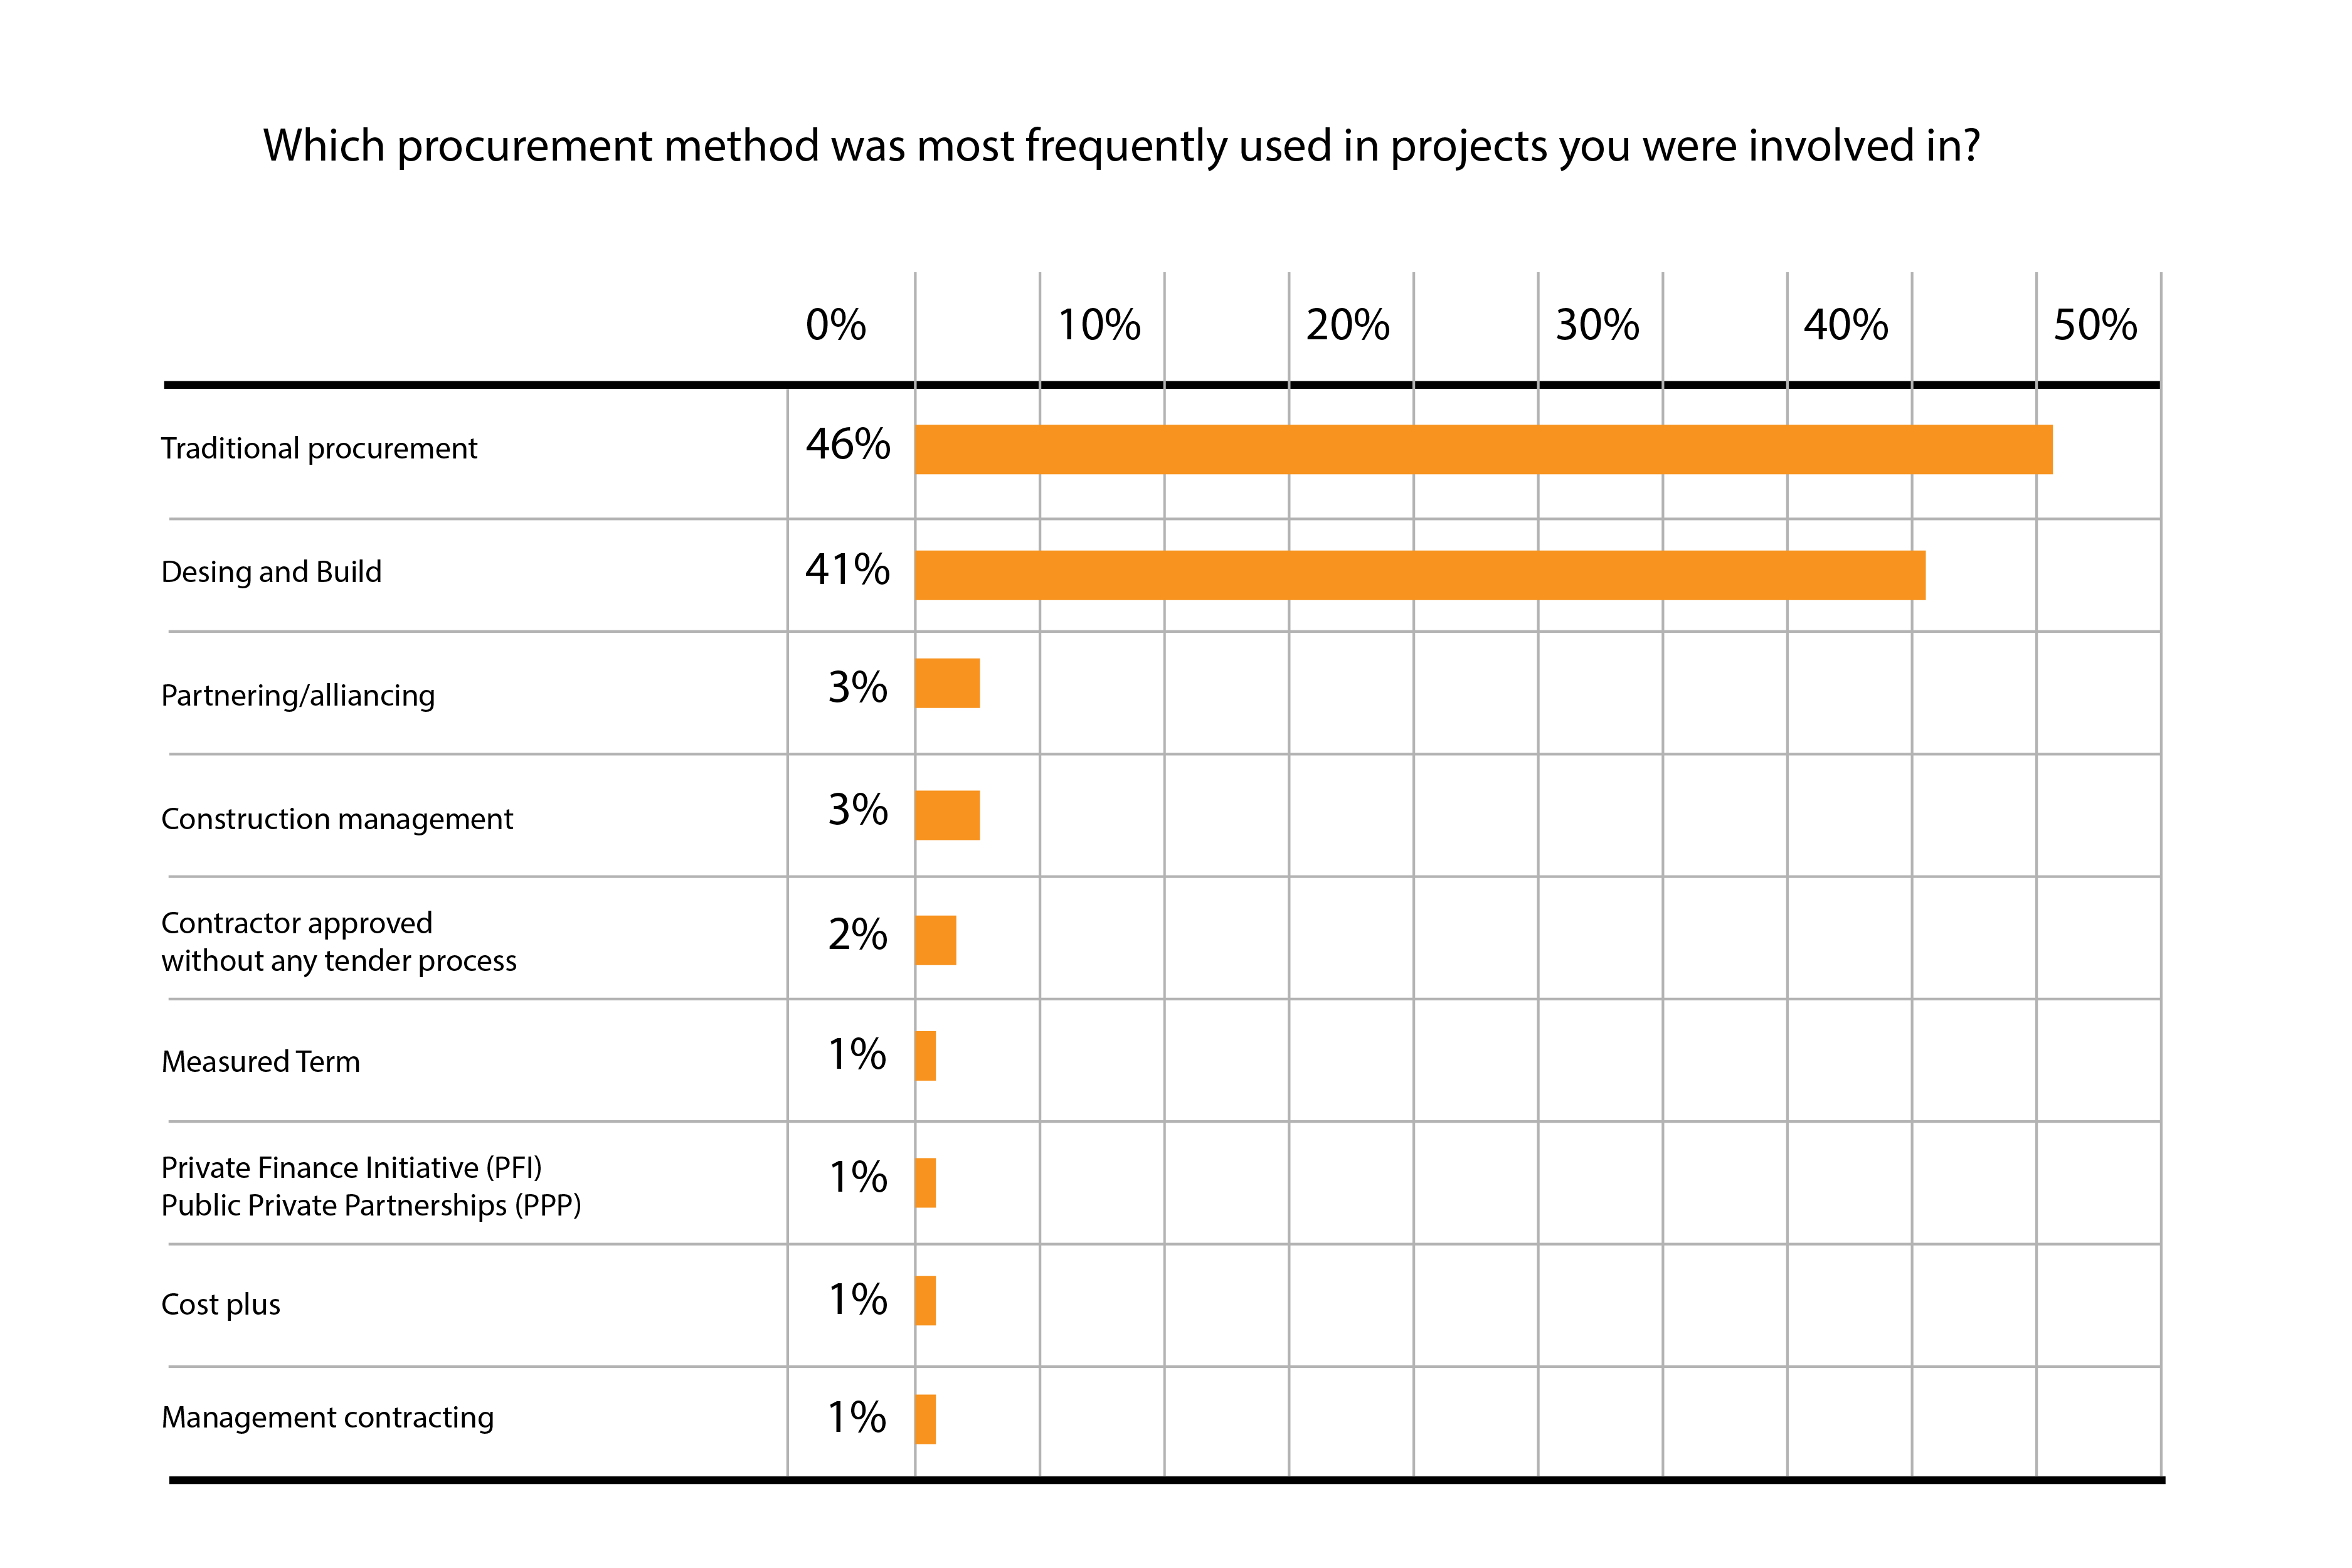 The procurement method frequency graph shows traditional procurement at 46%, design and build at 41%, partnering or alliancing at 3%, construcion management at 3%, contractor approved without any tender process at 2%, measured term at 1%, private finance initiative (PFI)/public private partnership (PPP) at 1%, cost plus at 1%, and management contracting at 1%